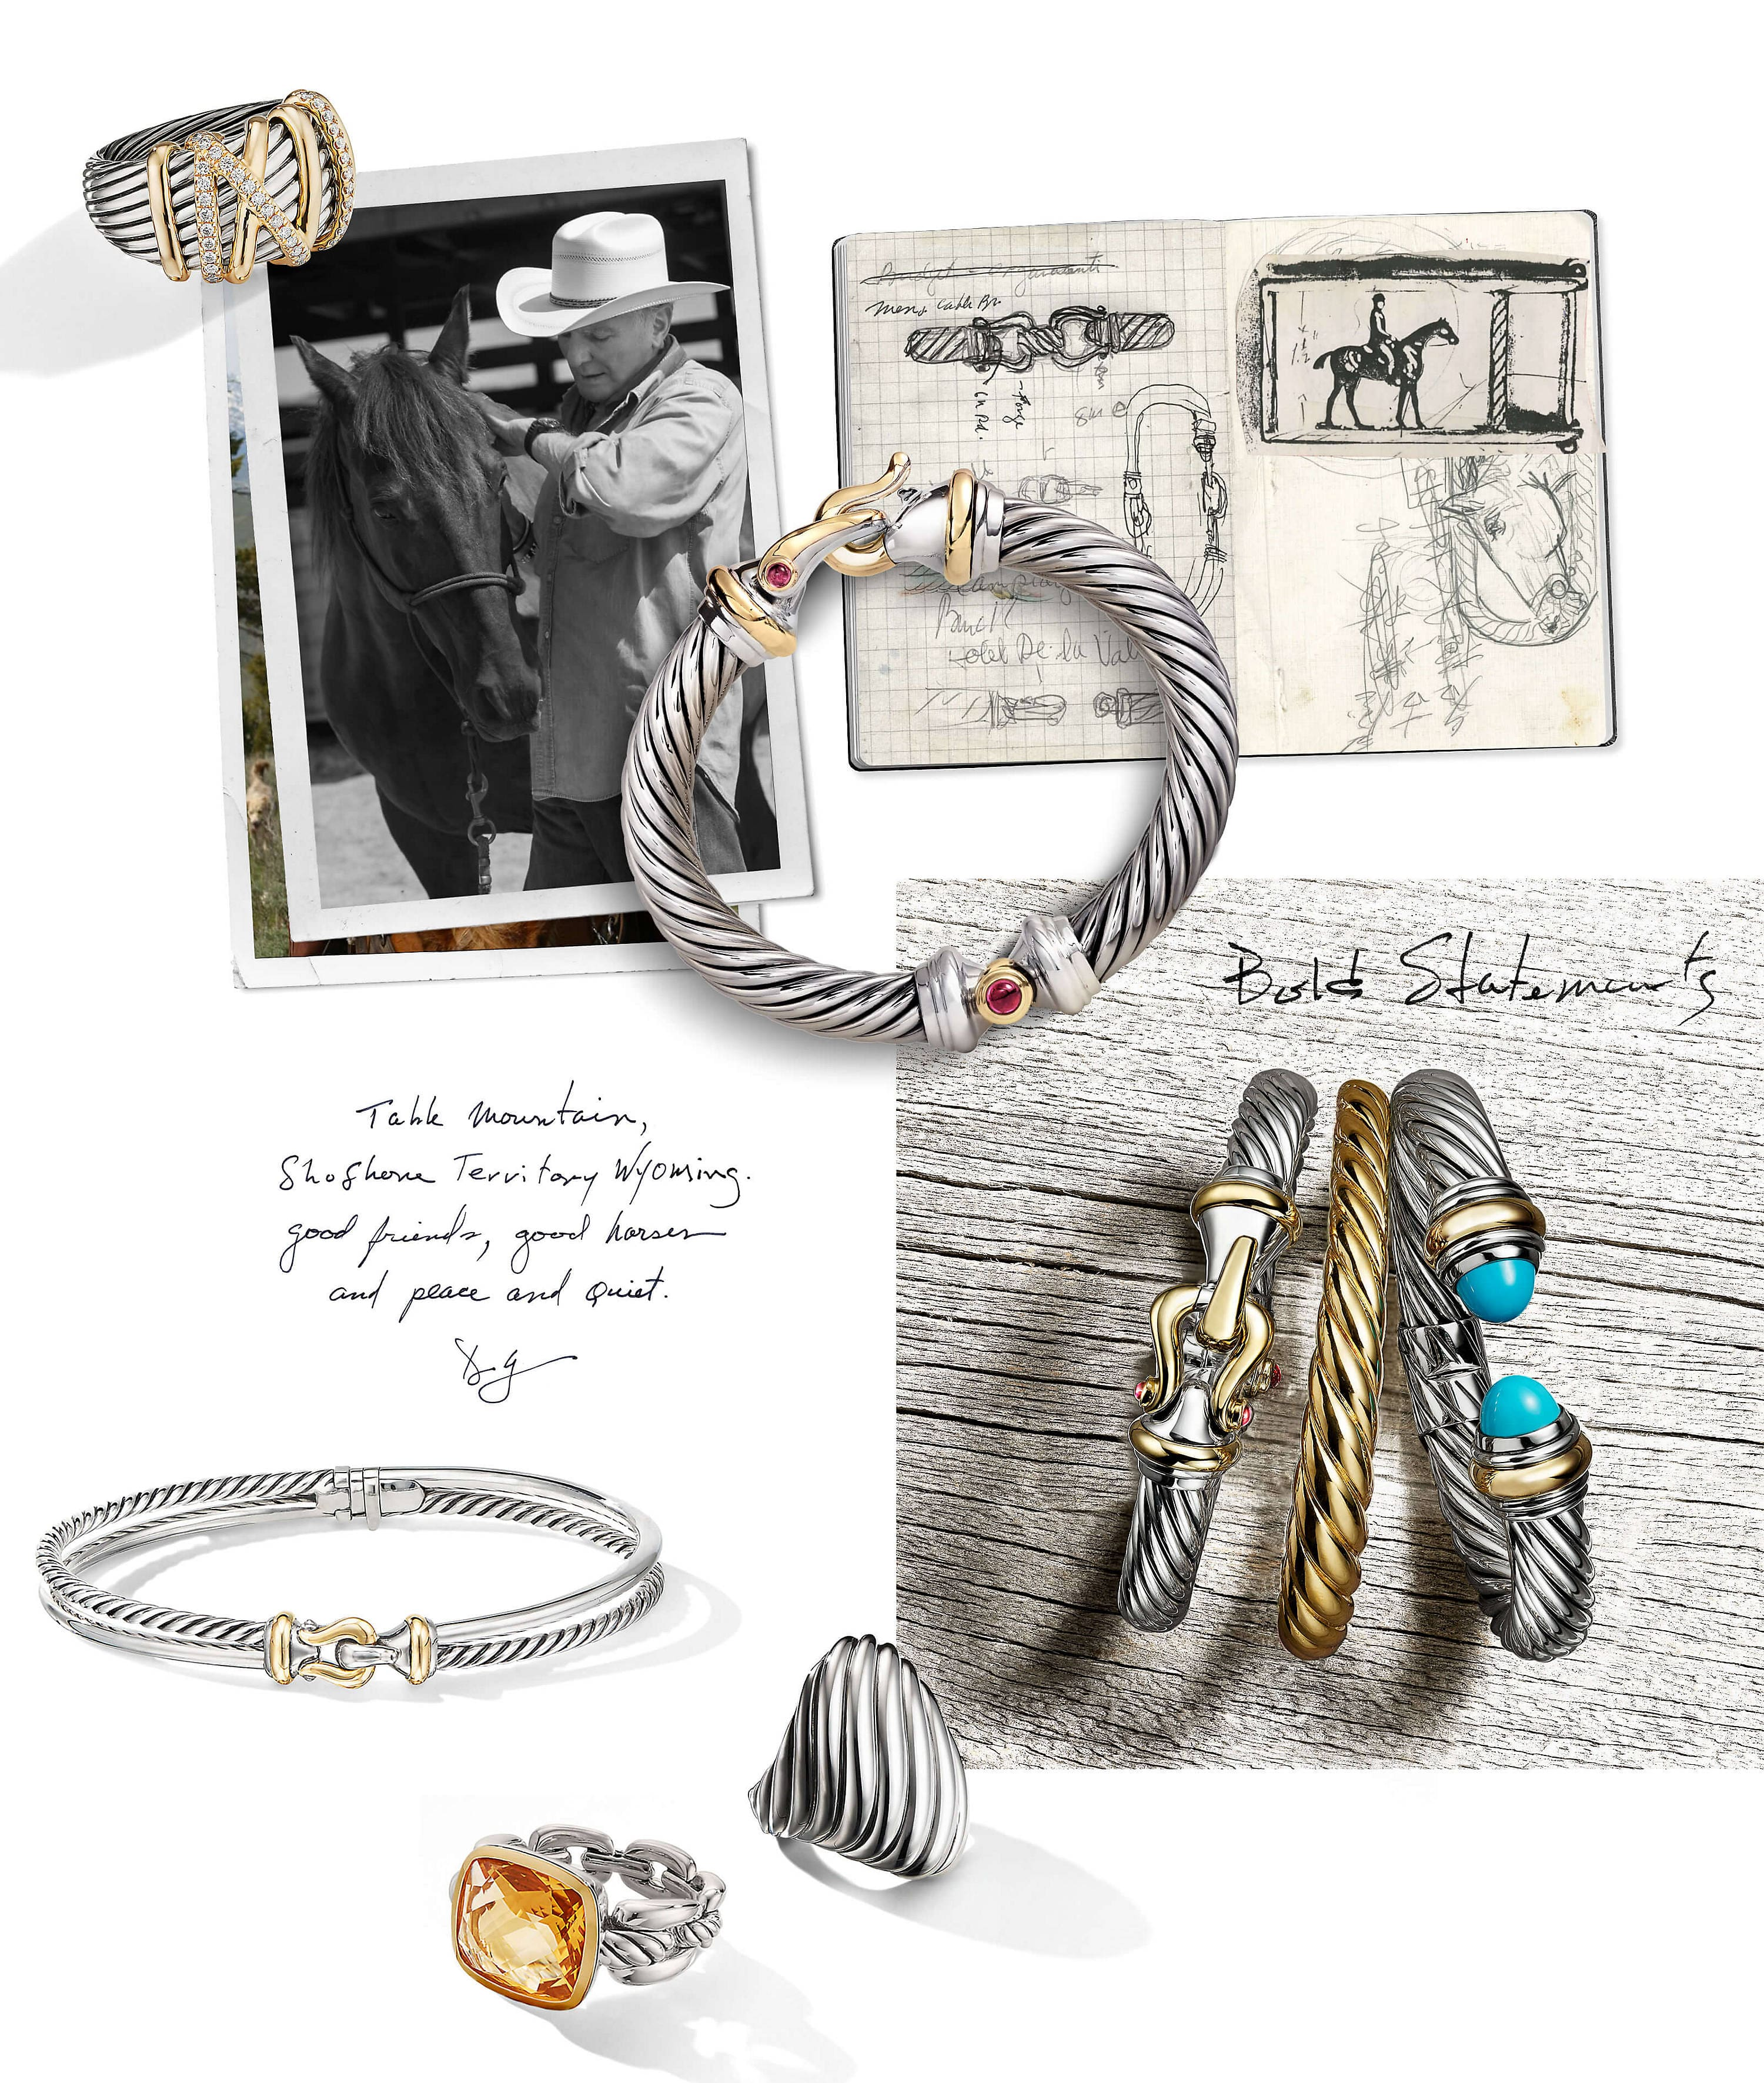 "A color photo shows a collage of pictures and jewelry. At the upper-left corner is a black-and-white self-developed picture of David Yurman wearing a button-front shirt and a cowboy hat while tending to a horse in front of a stable. This picture is overlaid over most of a colorful picture depicting a brown horse in front of a lush, green plain with snow-covered mountains in the background. Standing upright and casting long shadows over the top-left corners of these images is a David Yurman women's Helena ring in sterling silver with 18K yellow gold and pavé white diamonds. To the right of these pictures is a picture of a sketchbook open to display two pages with black-and-white sketches of a David Yurman Buckle bracelet clasp, a carabiner, a side profile of a person riding a horse and a horse's head facing towards the bottom of the right page. Below the picture of the sketchbook is a color photo of three David Yurman women's bracelets standing upright and casting long shadows on a weathered, light-grey wood plank surface. From left is a Buckle bracelet in sterling silver with 18K yellow gold and rhodolite garnet accents, a Pure Form Cable bracelet in 18K yellow gold and a Cable Collection bracelet in sterling silver with 18K yellow gold and reconstituted turquoise. In the top-right corner of this picture are the words ""Bold Statements"" handwritten in black ink. Positioned with an overhead view across corners of all three pictures is a Buckle bracelet in in sterling silver with 18K yellow gold and rhodolite garnet accents. Below the overlaid pictures of David Yurman and the horses are the words ""Table Mountain, Shoshone Territory Wyoming. Good friends, good horses and peace and quiet."" and ""DY"" handwritten in black ink. Below these words is a Buckle bracelet, in sterling silver with 18K yellow gold, standing up and casting long shadows on a white background. Below and between this bracelet and the photo of the four bracelets on the wood planks are two David Yurman sterling silver rings standing upright and casting long shadows on a white background. Facing left is a Wellesley Link ring with 18K yellow gold and citrine. Facing right is a statement Cable ring."